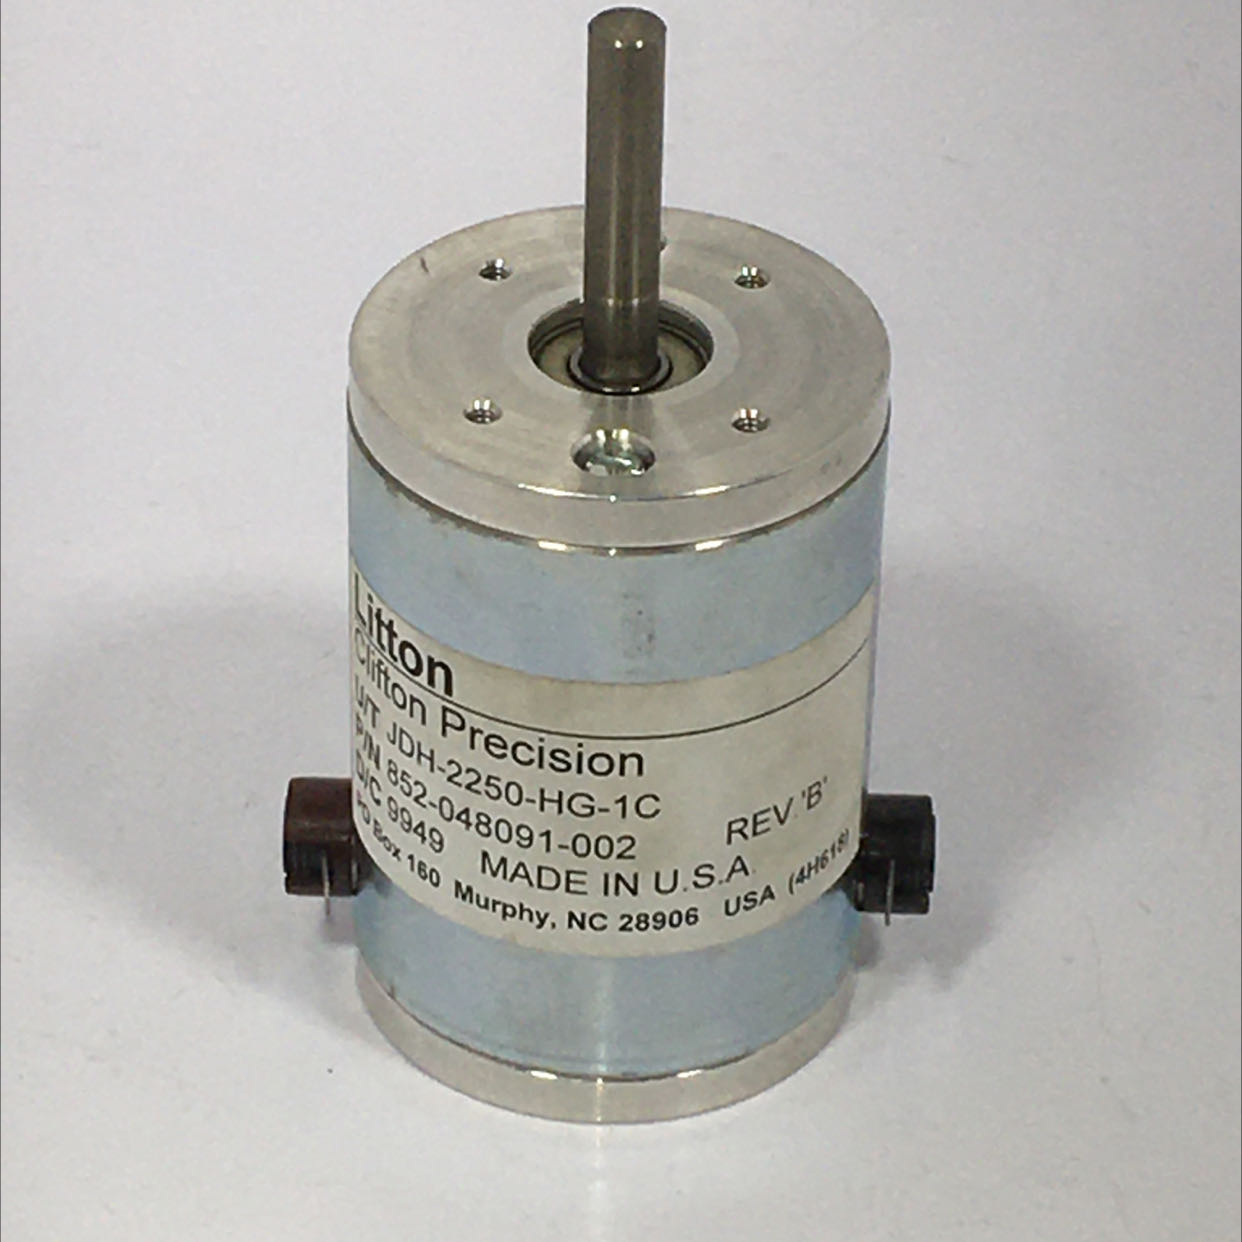 Litton JDH-2250-HG-1C Clifton Precision DC Motor